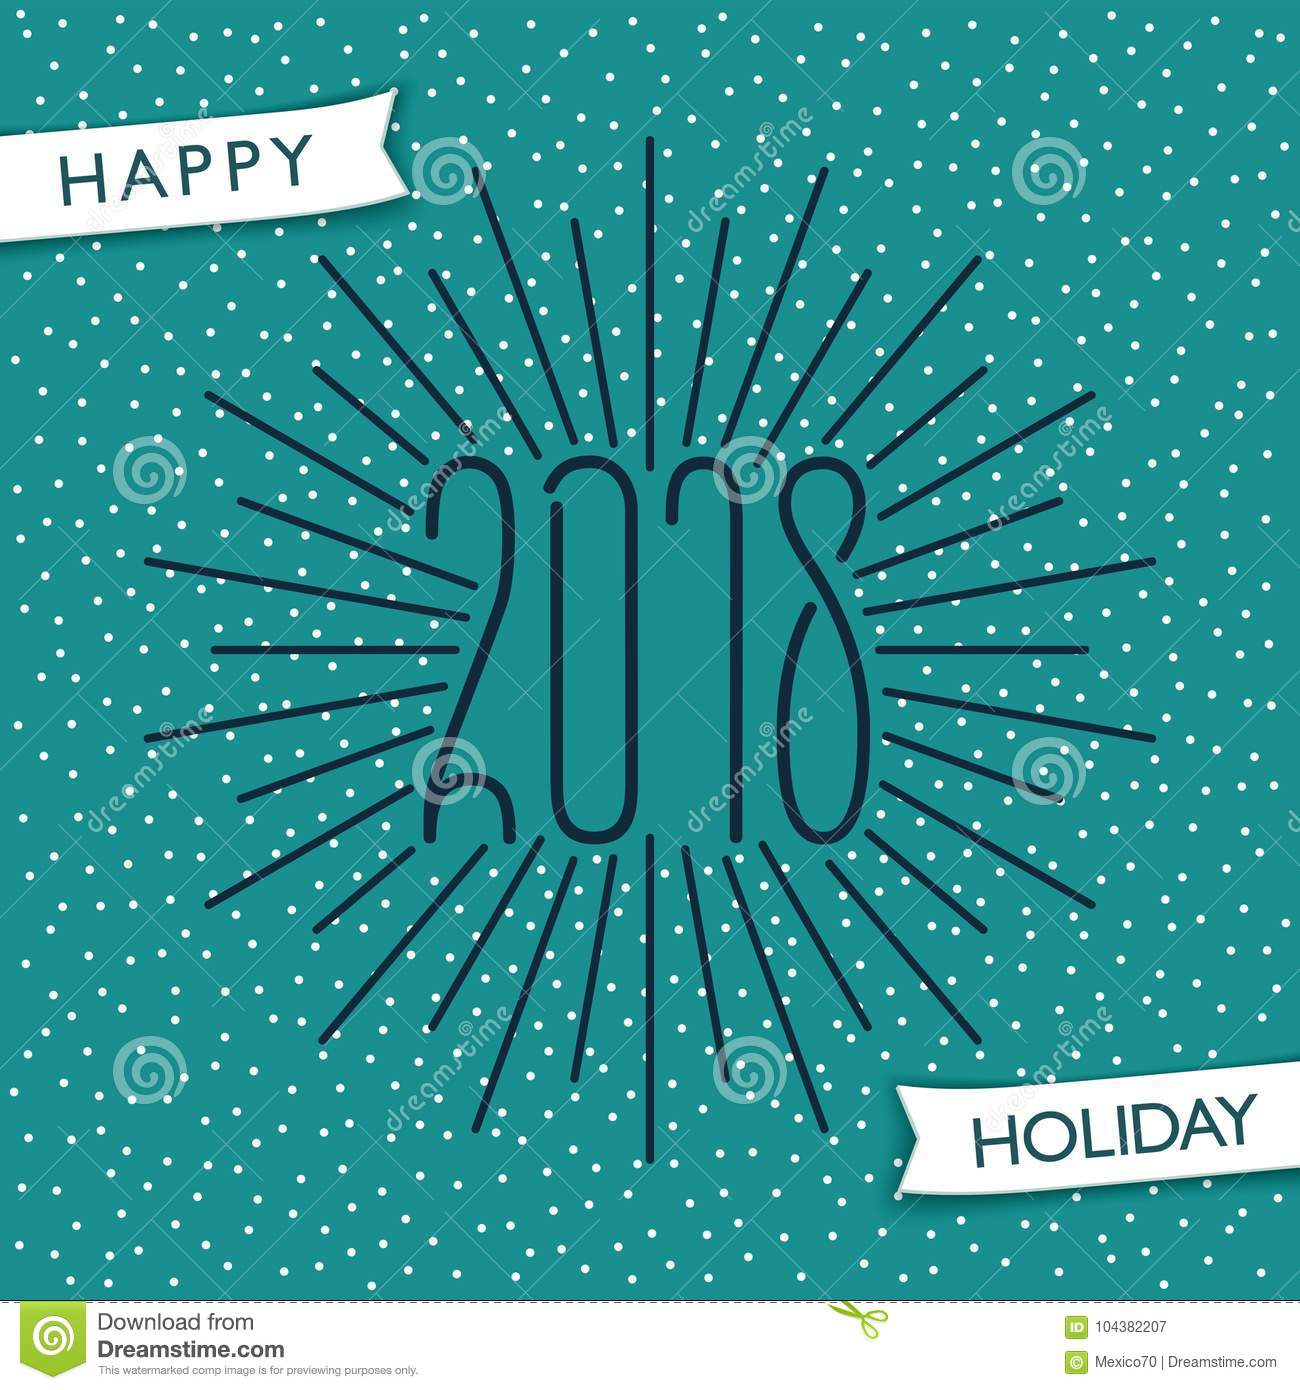 Happy Holiday 2018 Stock Vector Illustration Of Decoration 104382207